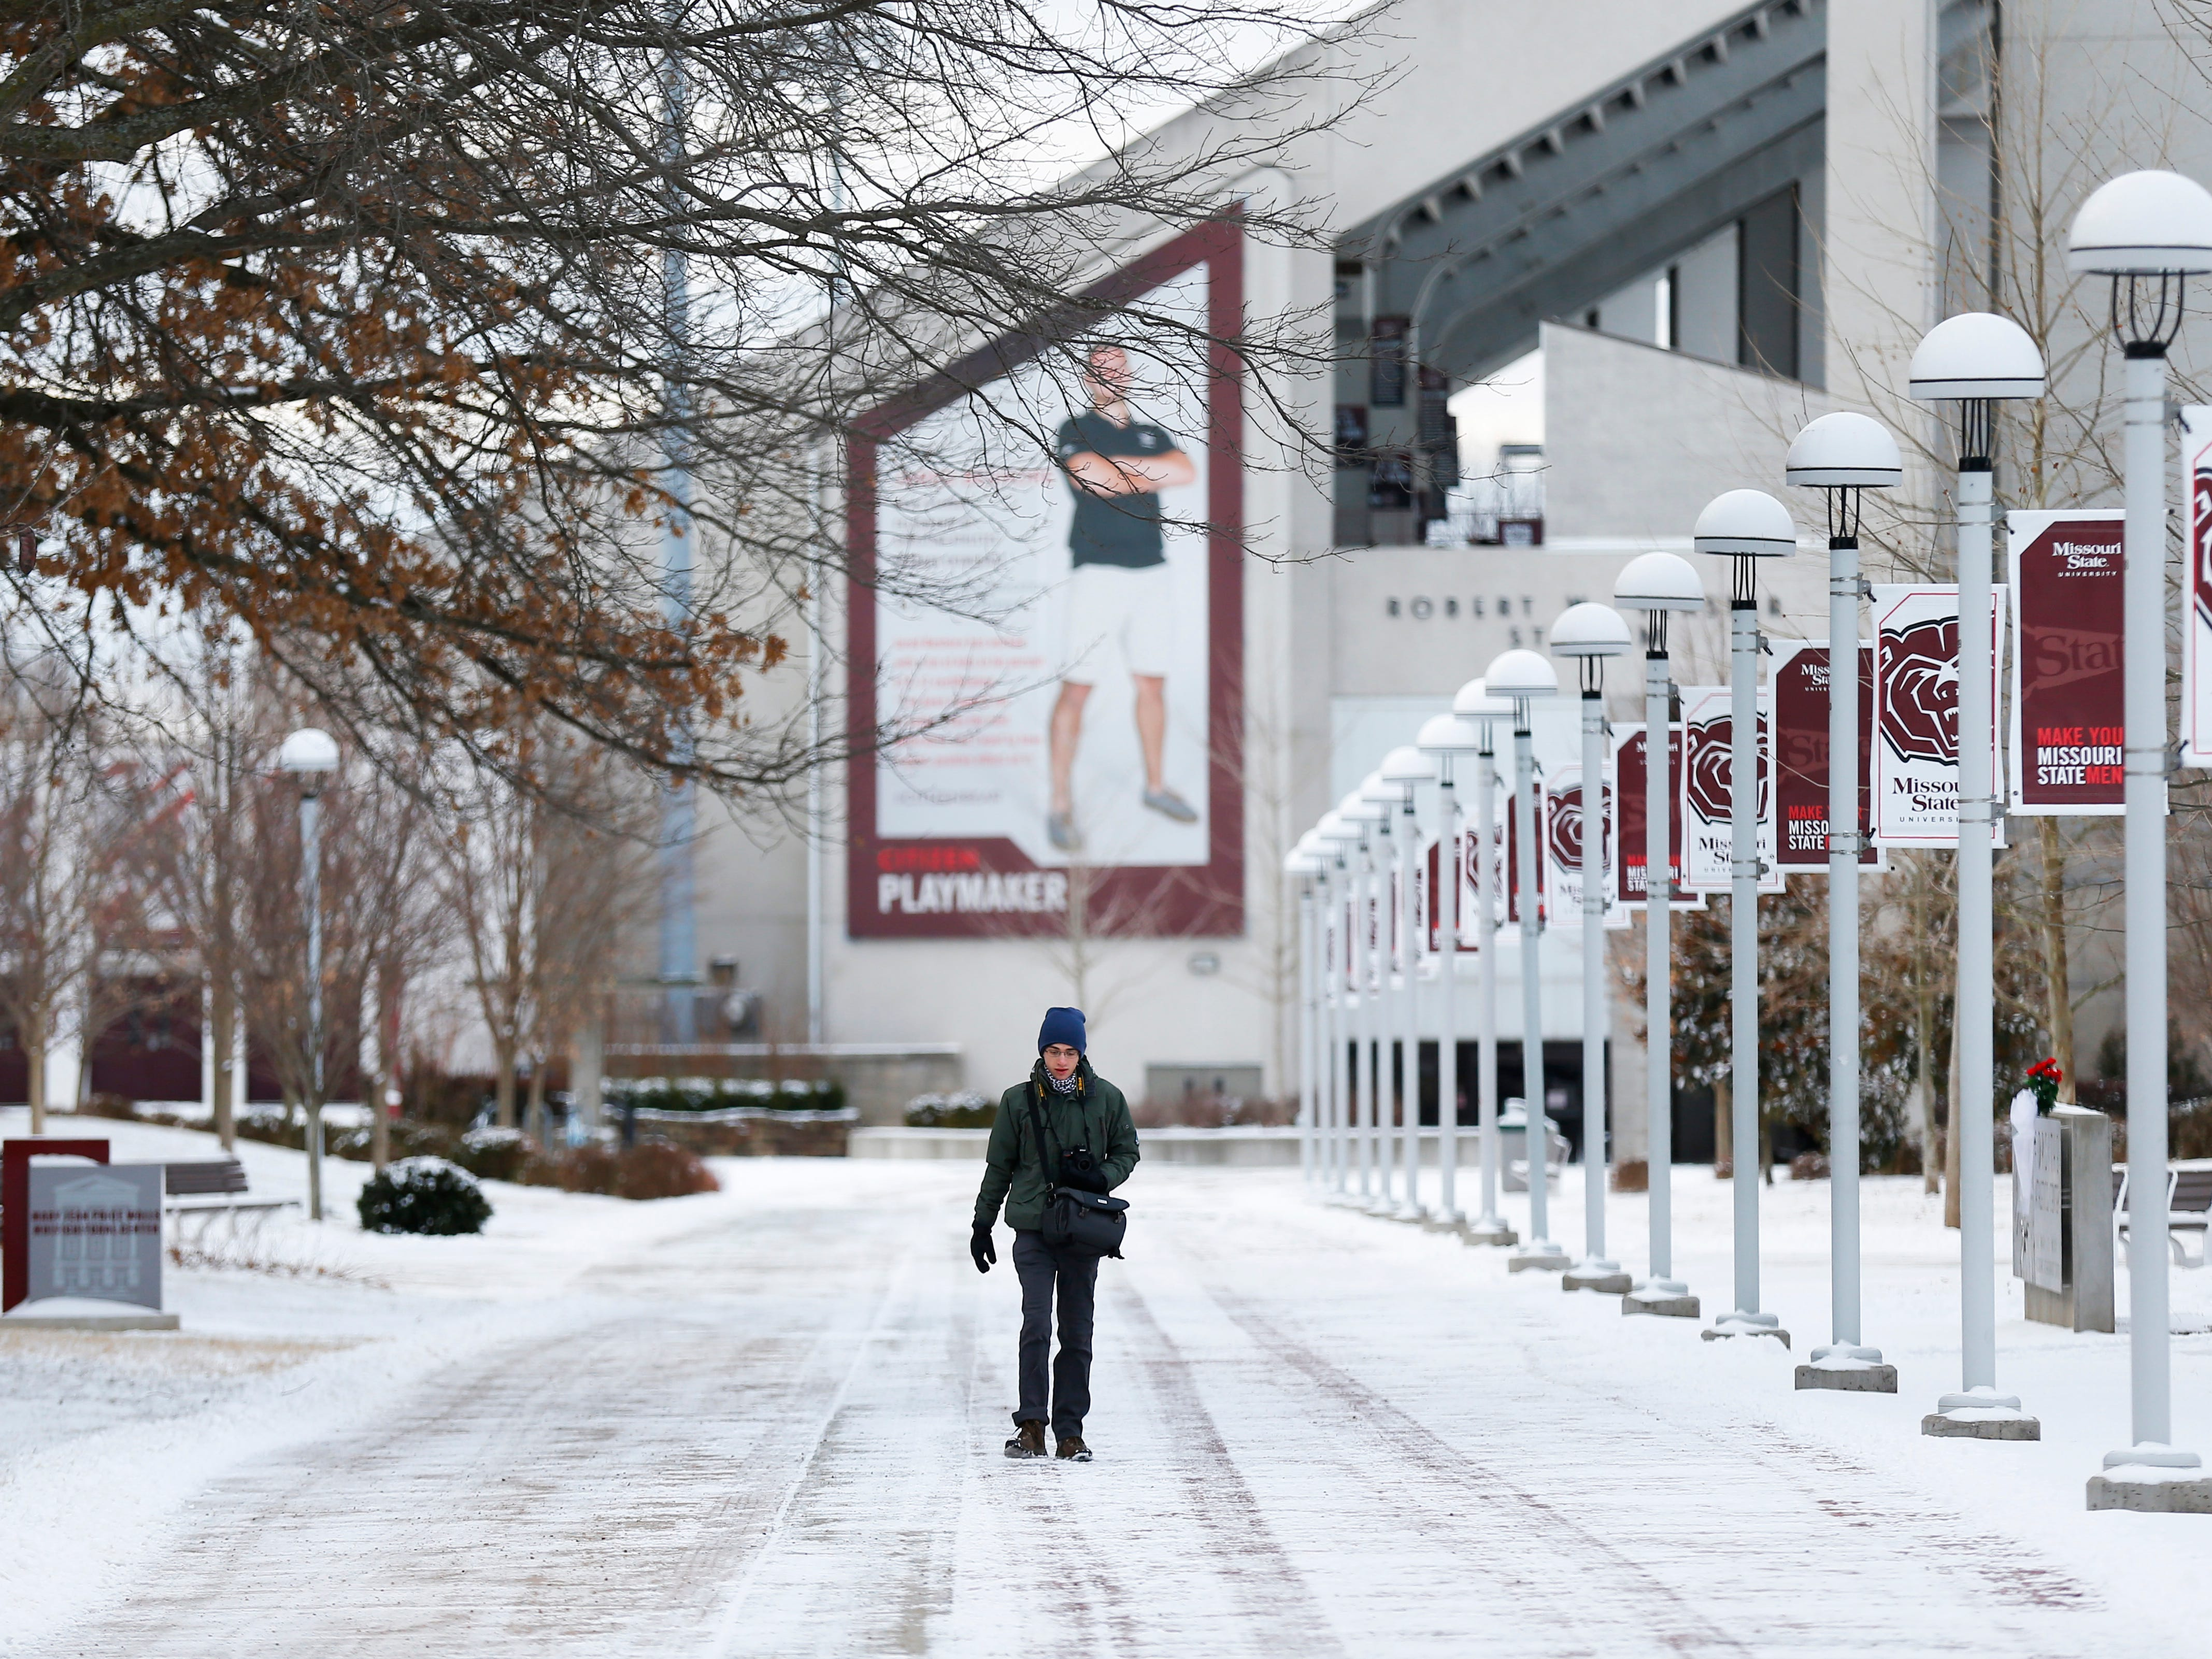 A student walks across a snow covered path on the campus of Missouri State University Wednesday morning, January 30, 2019.